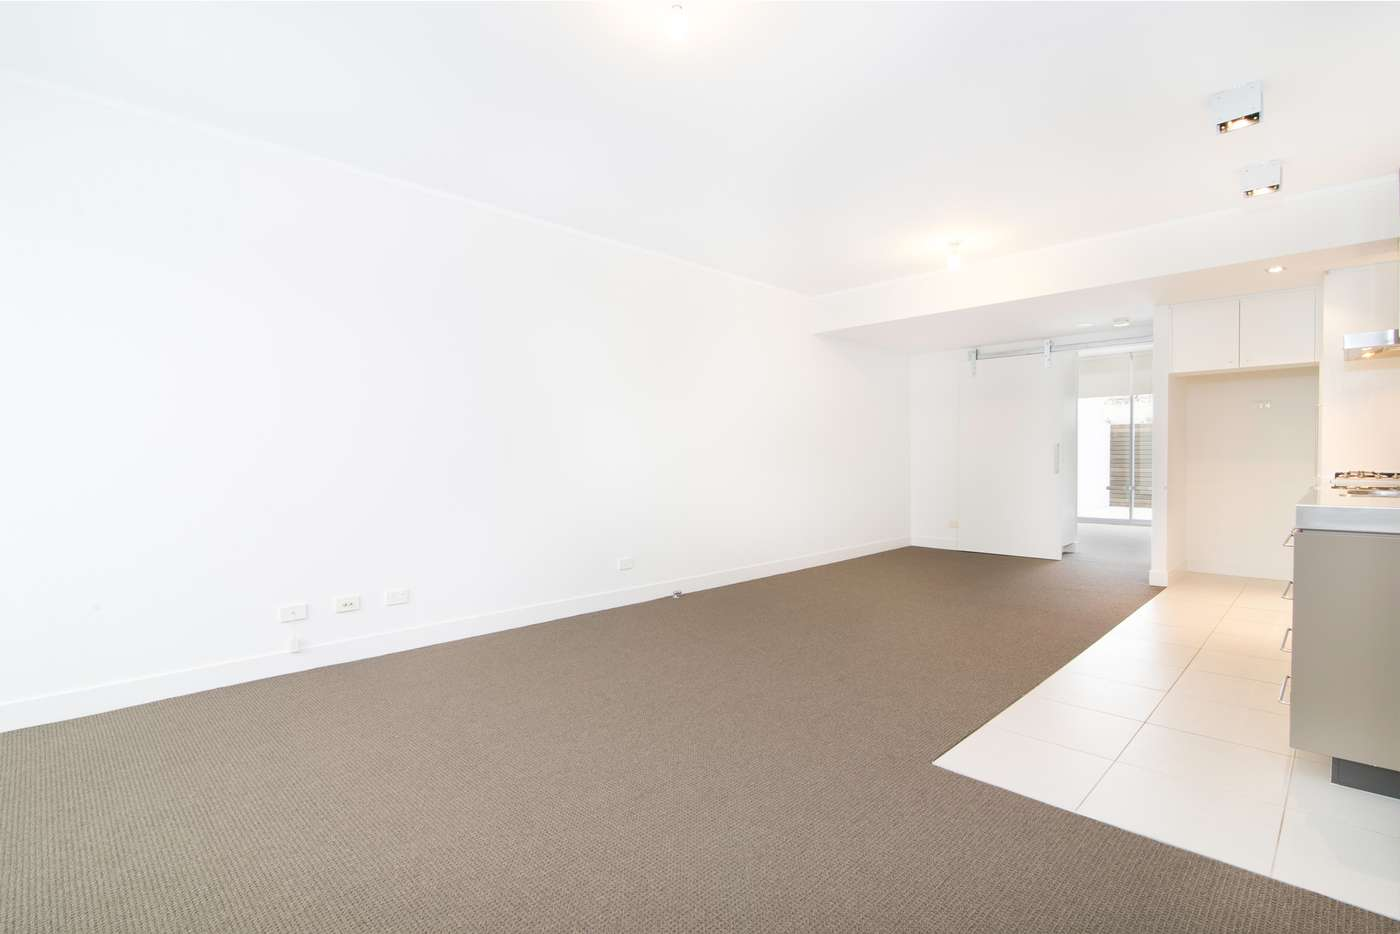 Sixth view of Homely apartment listing, 410/169-175 Phillip Street, Waterloo NSW 2017